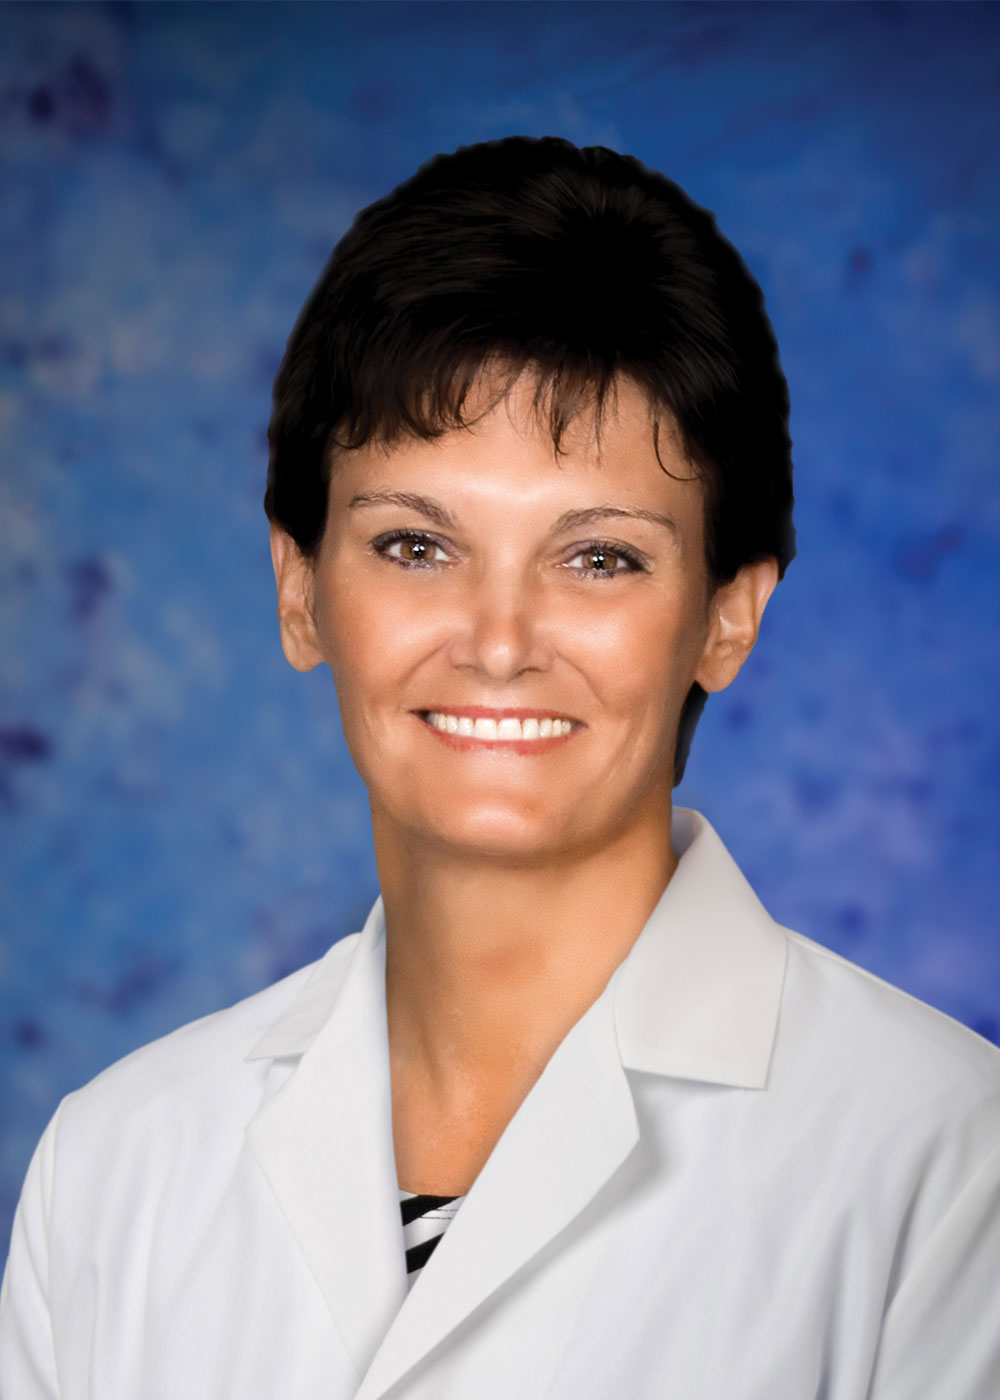 Tamara Collins Md Of Crossville Medical Group